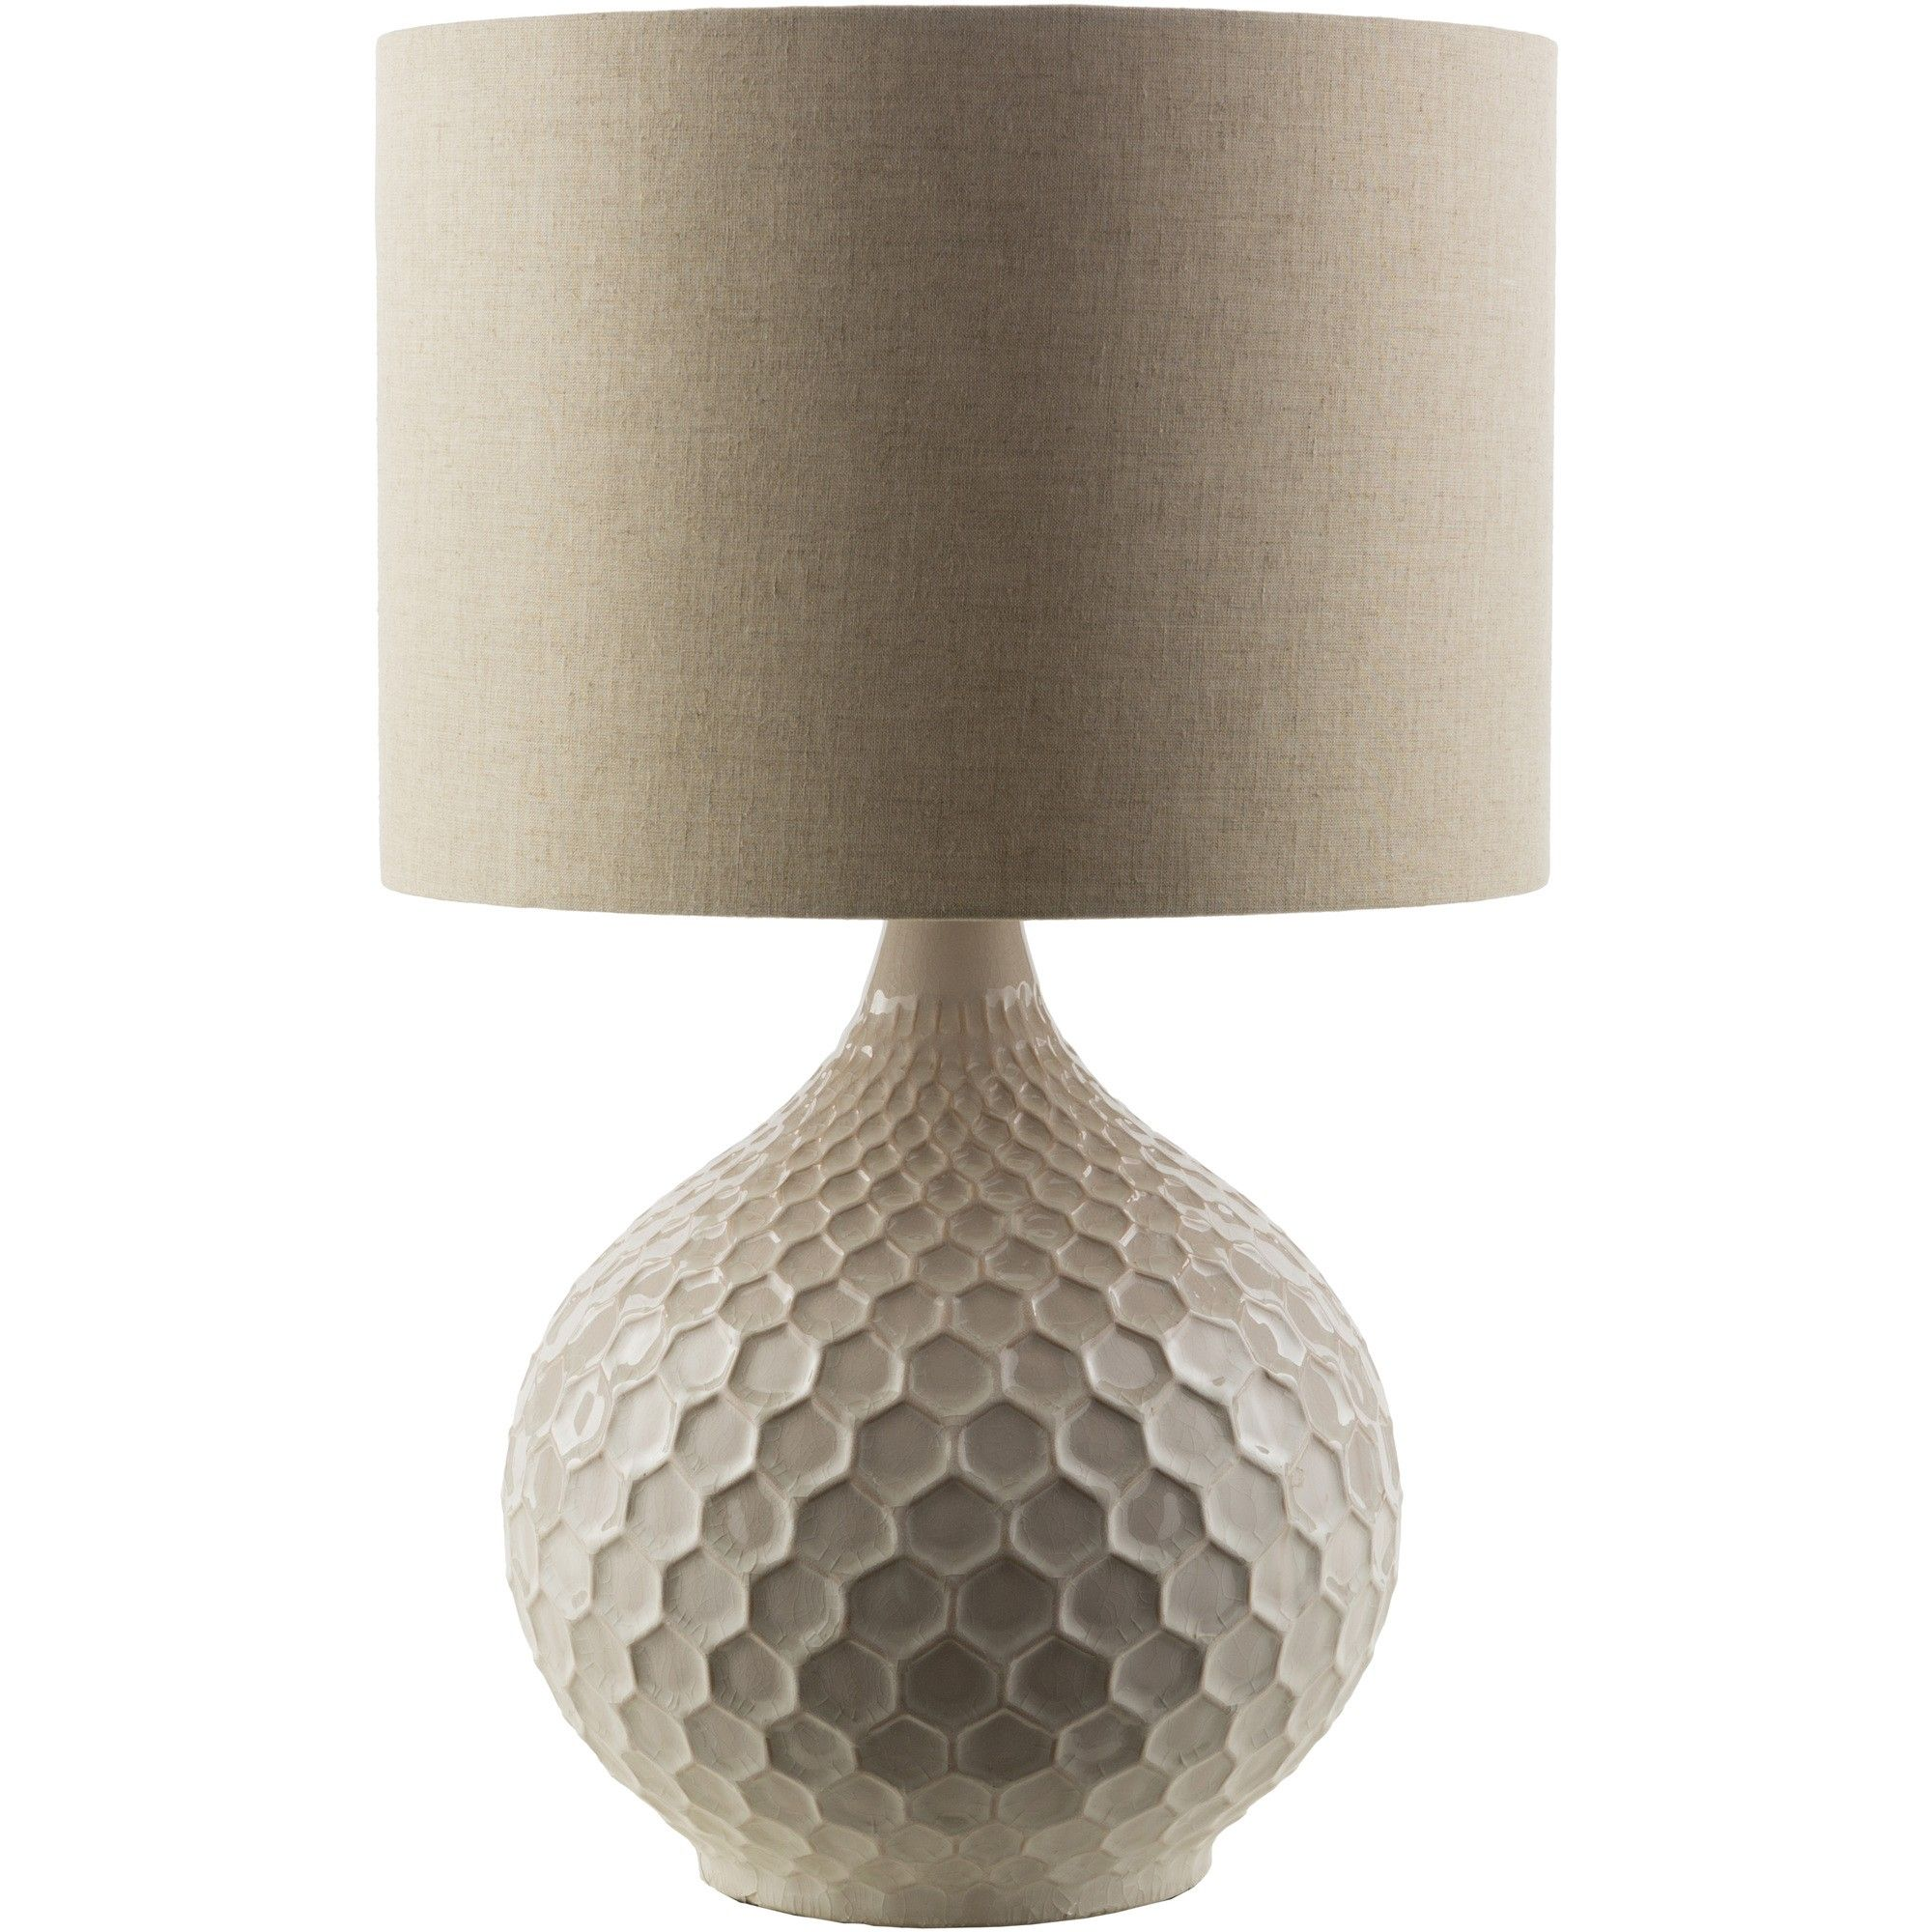 With a gorgeous, honeycomb-textured base, our Berry Hill Lamp ...